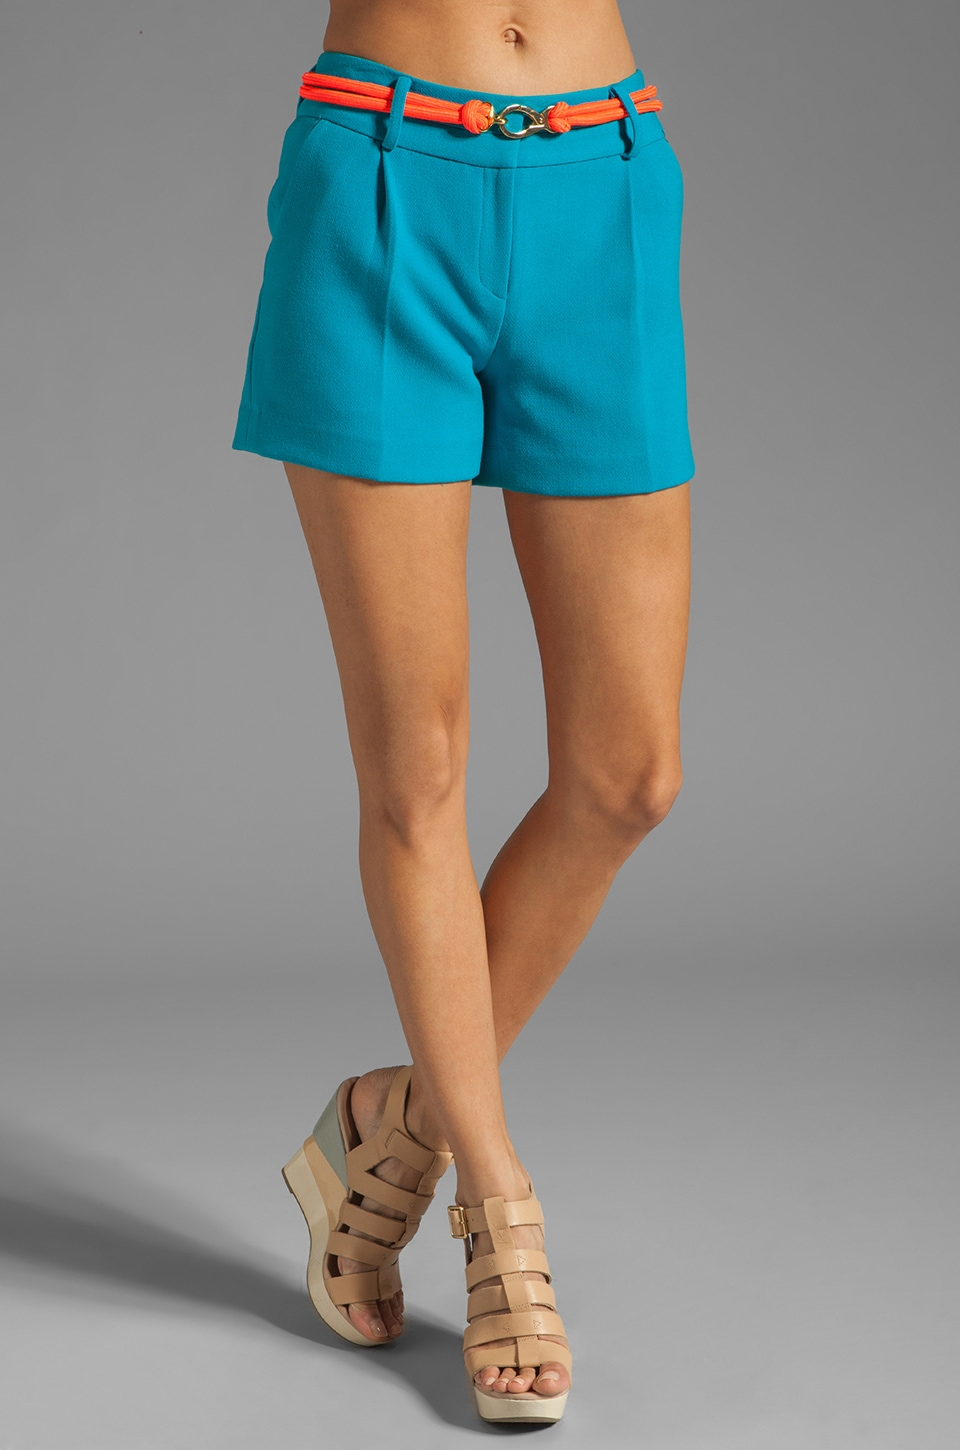 MILLY Doubleweave Crepe Side Pocket Short with Belt in Aqua